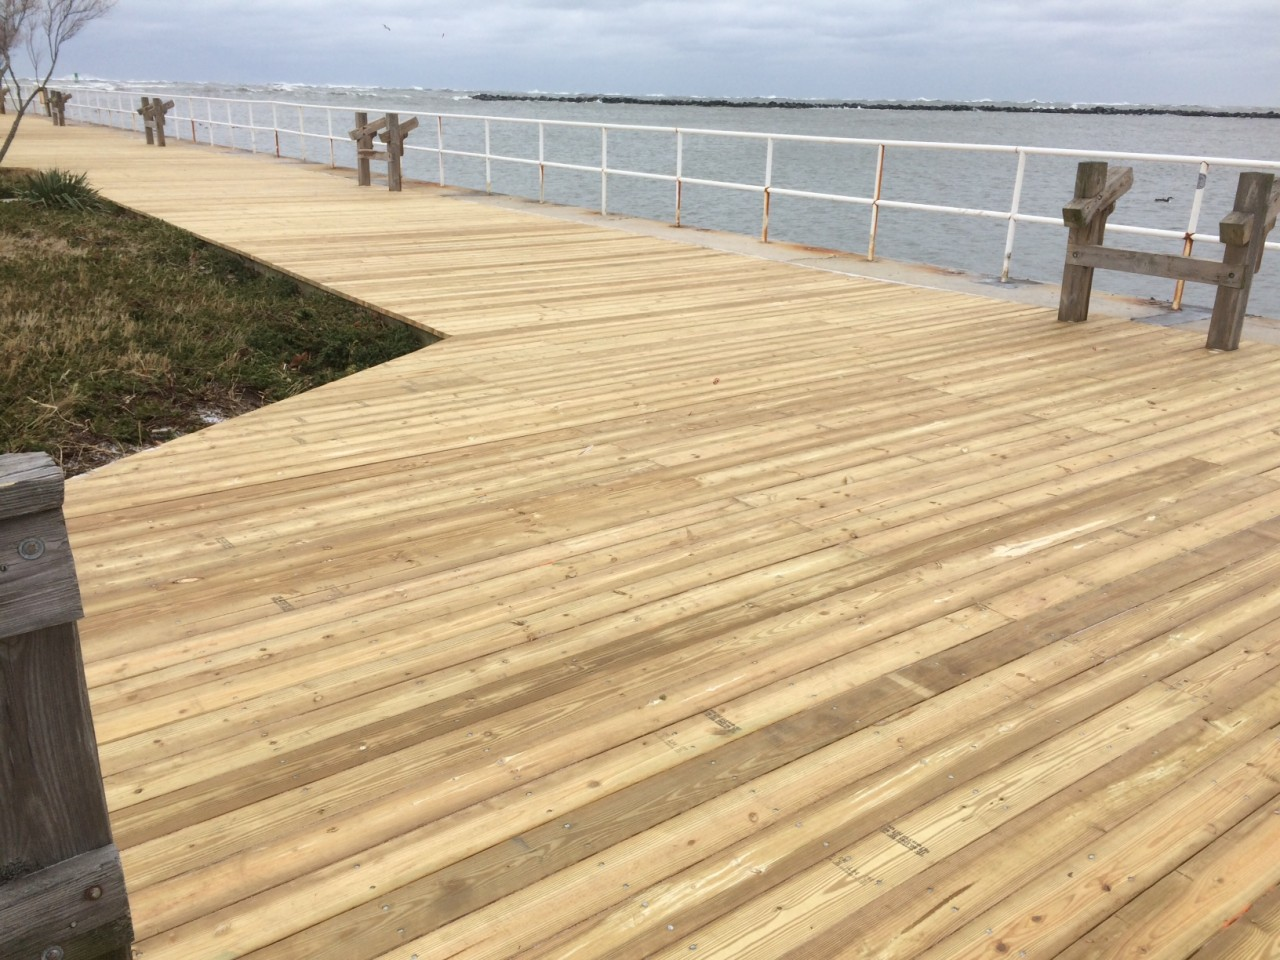 Inlet Boardwalk Deck Renovations - Ocean City, MD